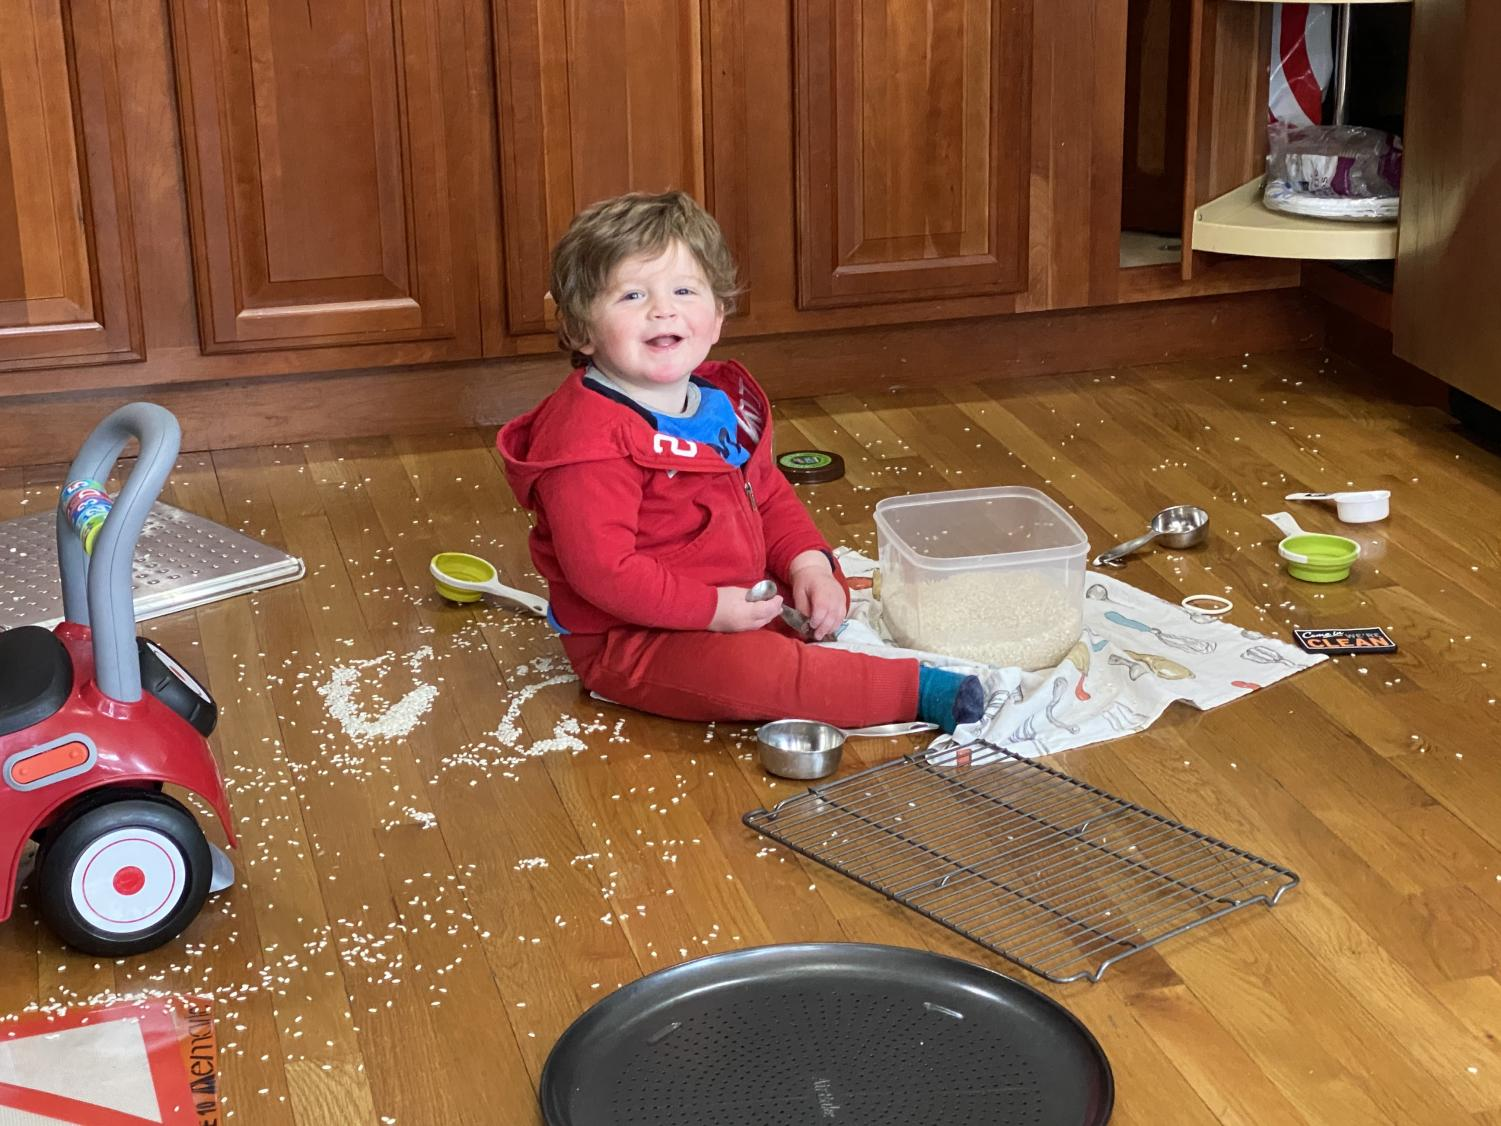 History teacher David Cutlers young son makes a mess in the kitchen while dad and mom, also a teacher, Zoom with students. The picture speaks for itself.